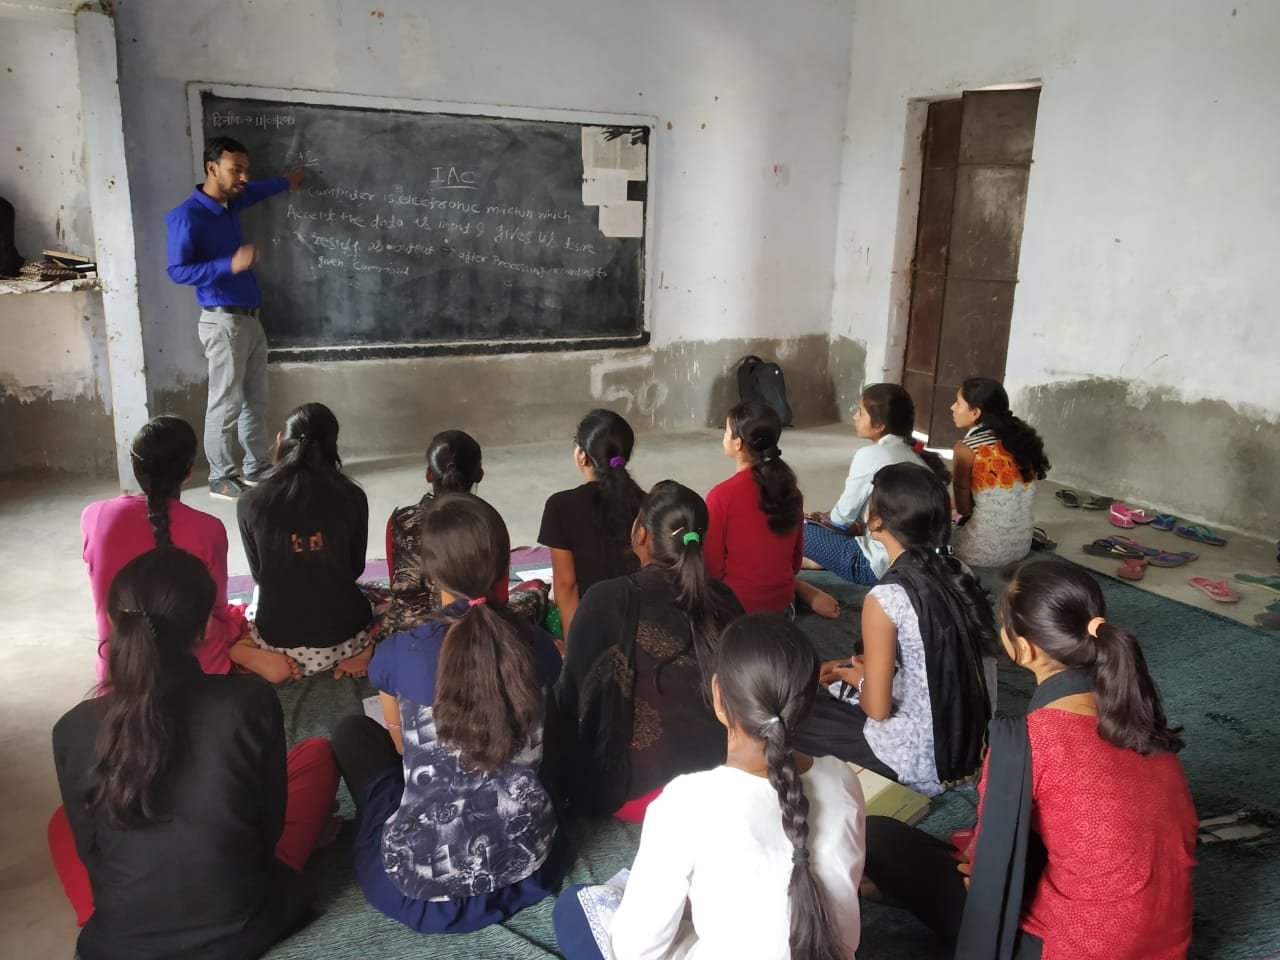 Helping improve education and opportunities for women in